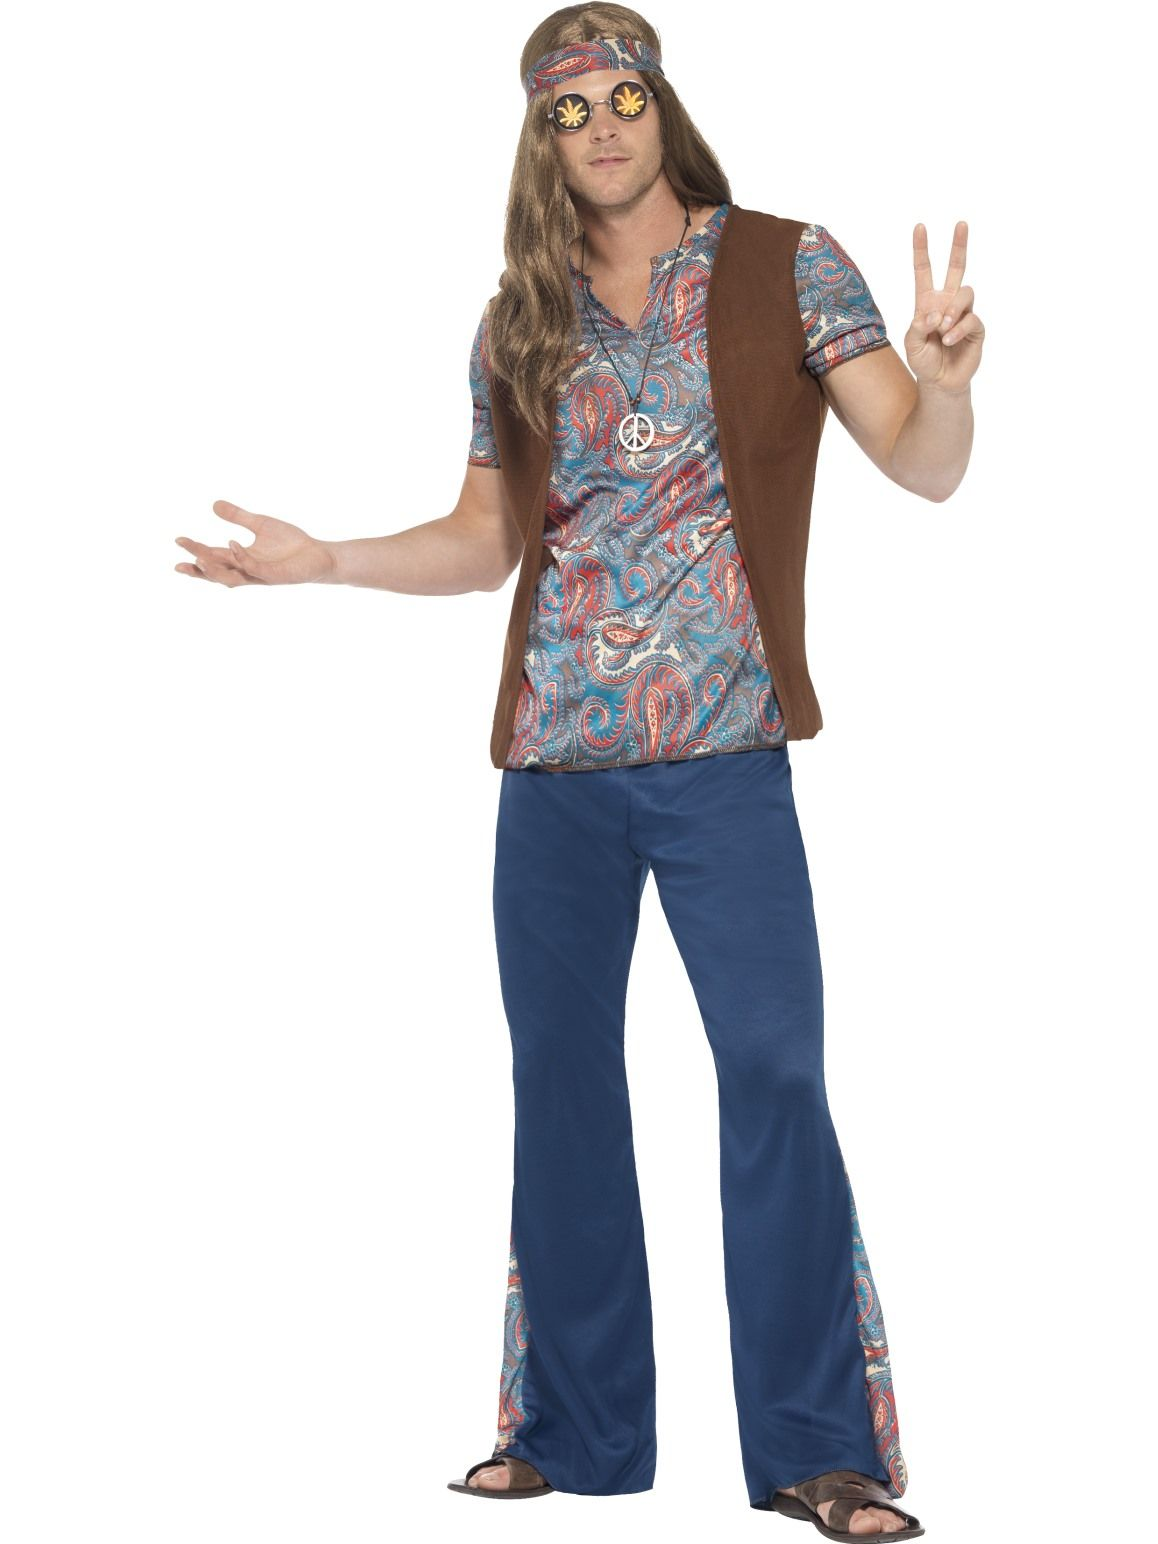 Orion the Hippie Costume - Buy Online Only